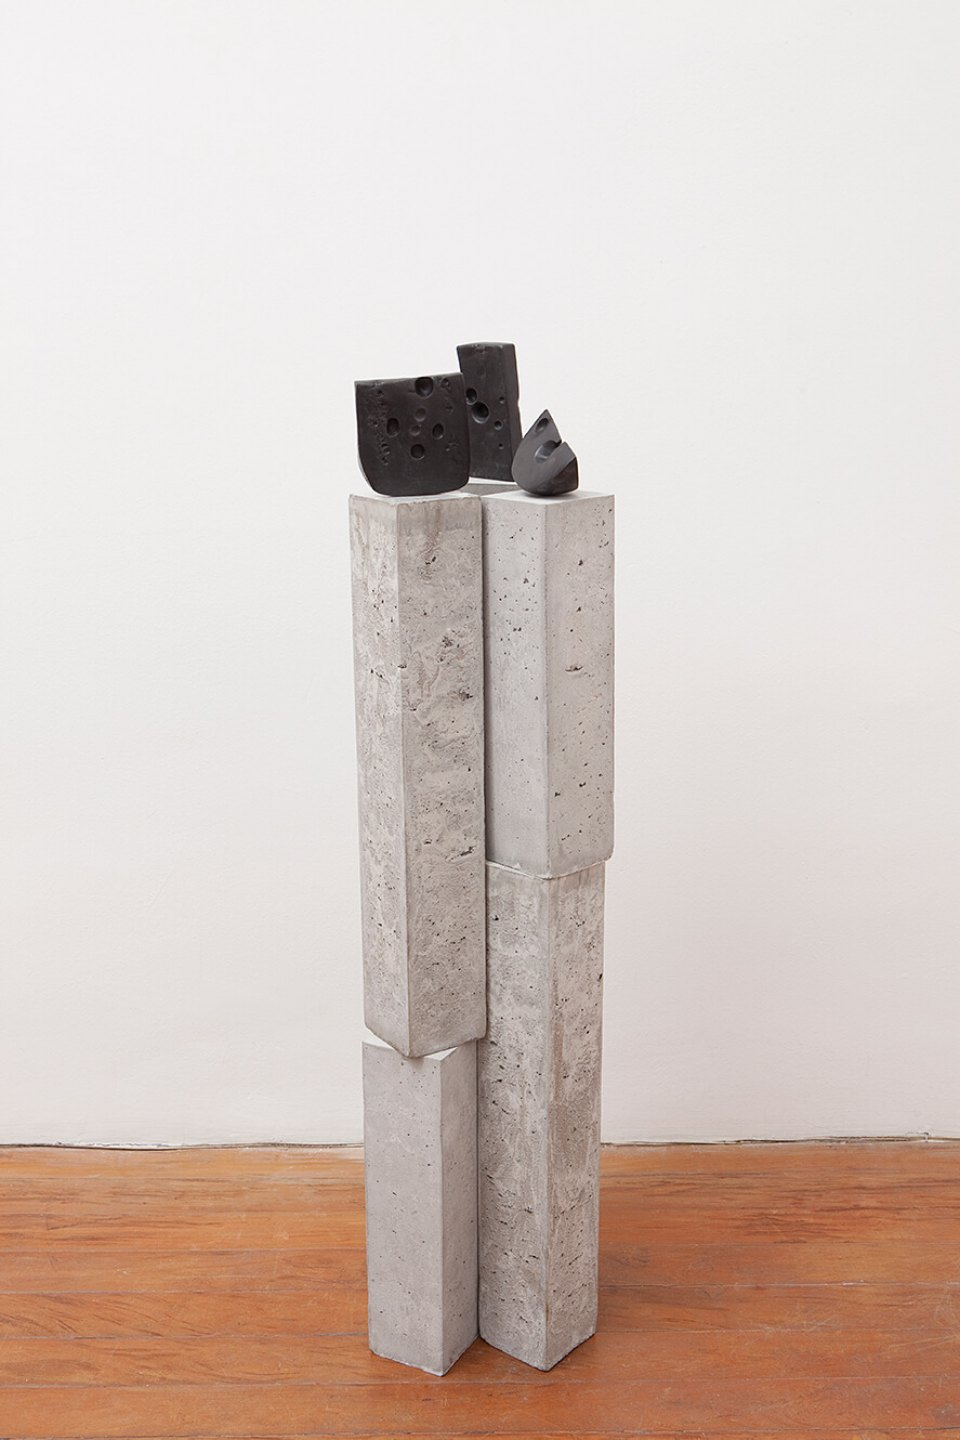 Adriano Costa, <em>Meetings With Remarkable Men</em>, 2013, bronze and ciment, 124 × 30 × 35 cm - Mendes Wood DM